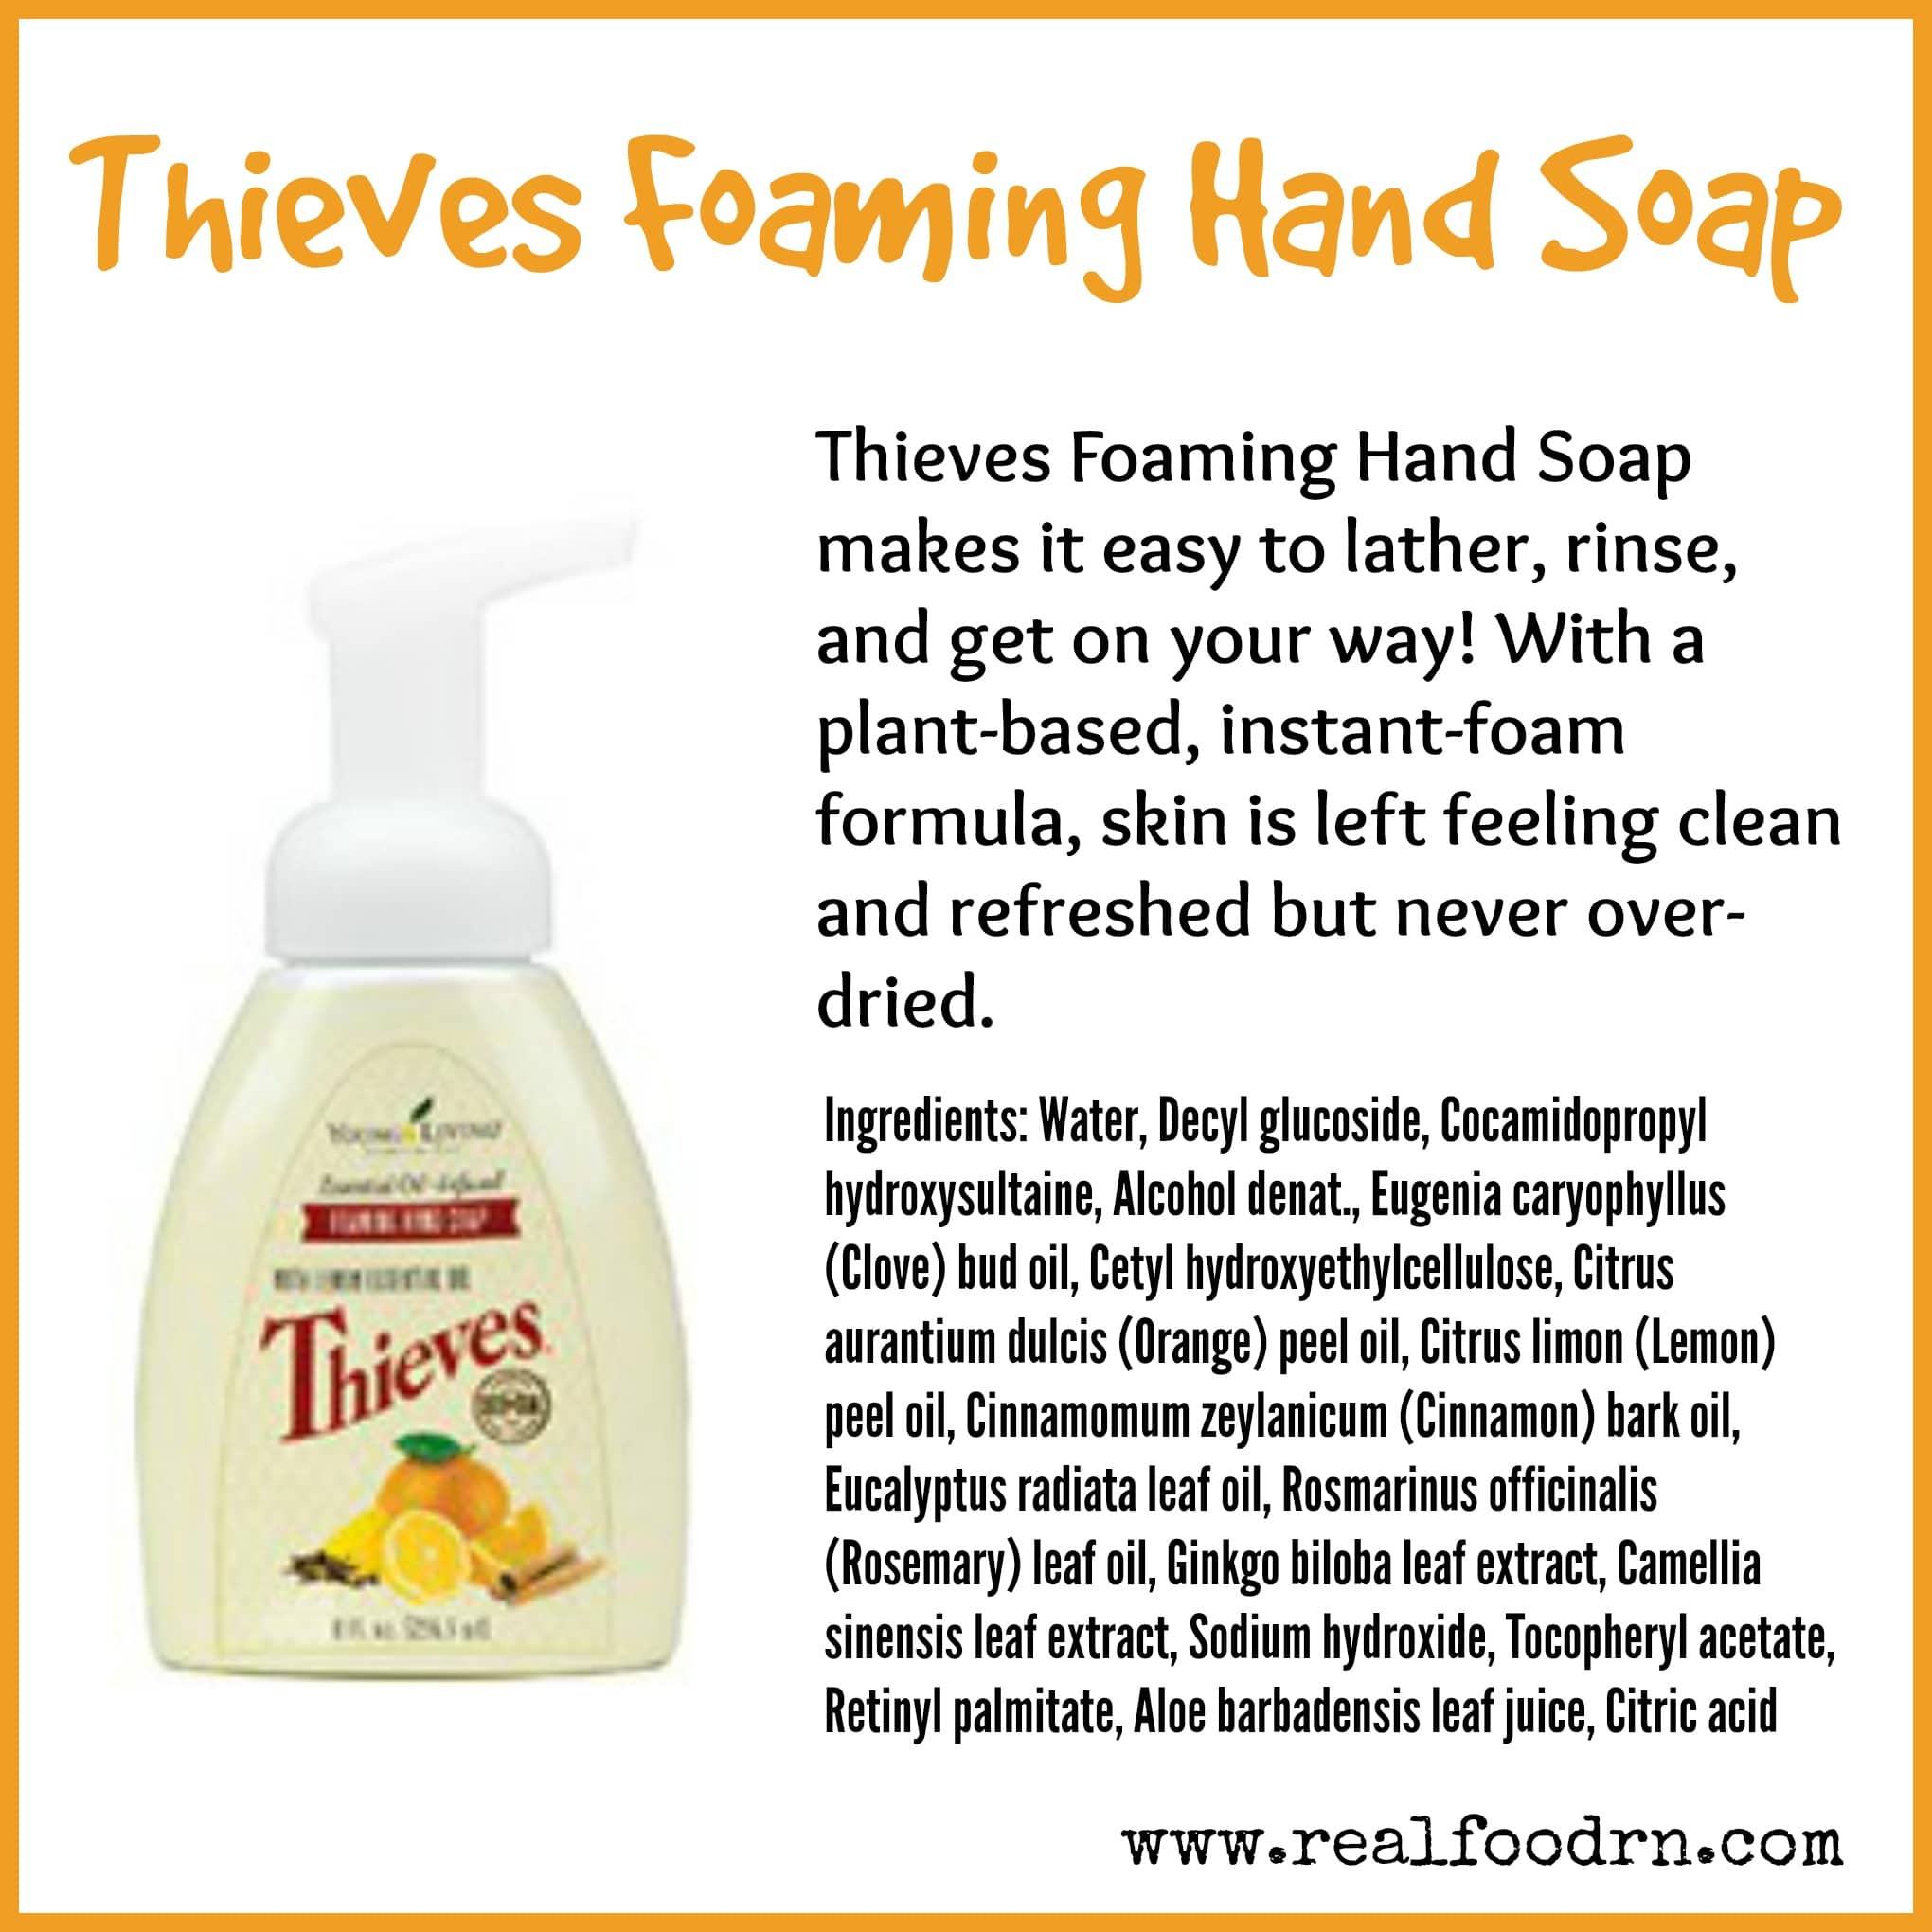 Thieves Foaming Hand Soap Real Food Rn